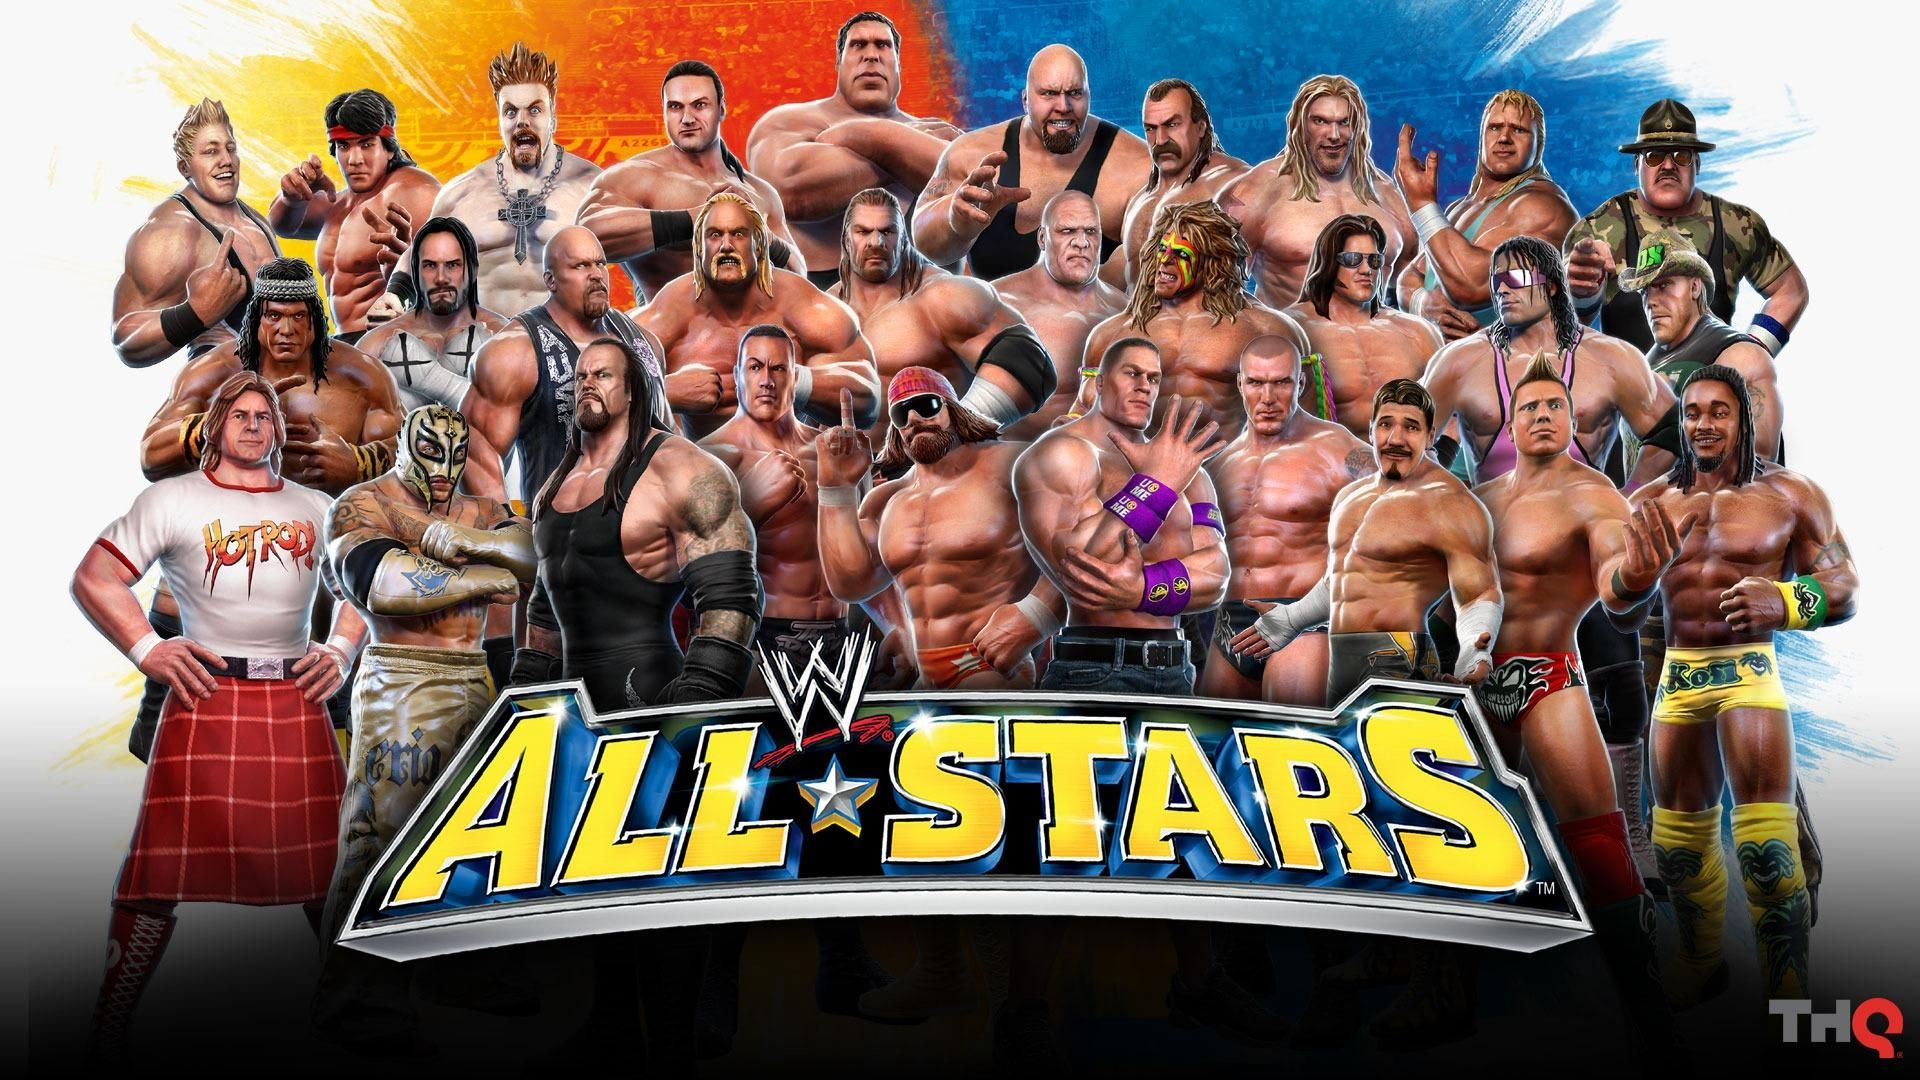 a73e6251bbb6 WWE All Stars is a professional wrestling video game published by THQ and  developed by THQ